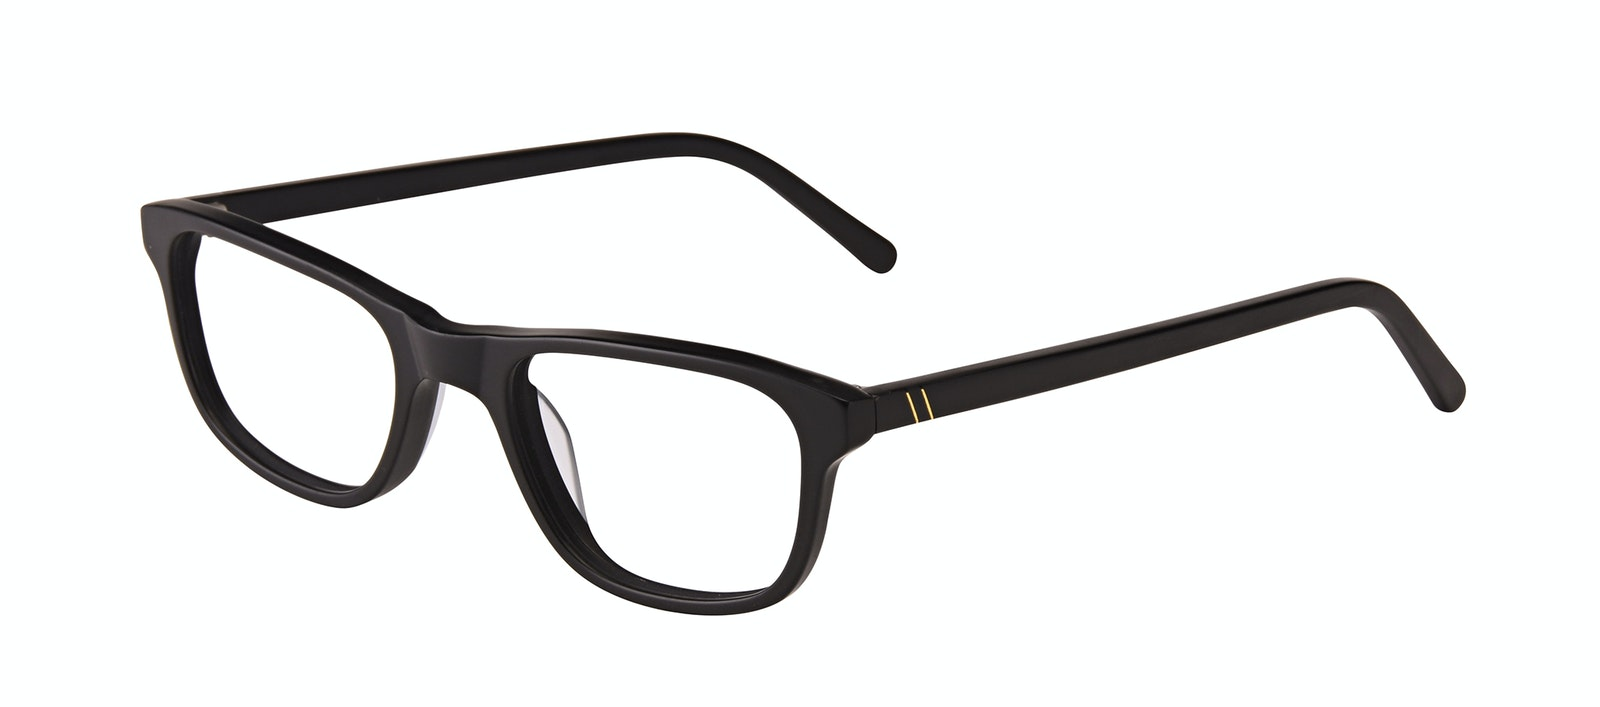 Affordable Fashion Glasses Rectangle Eyeglasses Men Neat Matte Black Tilt